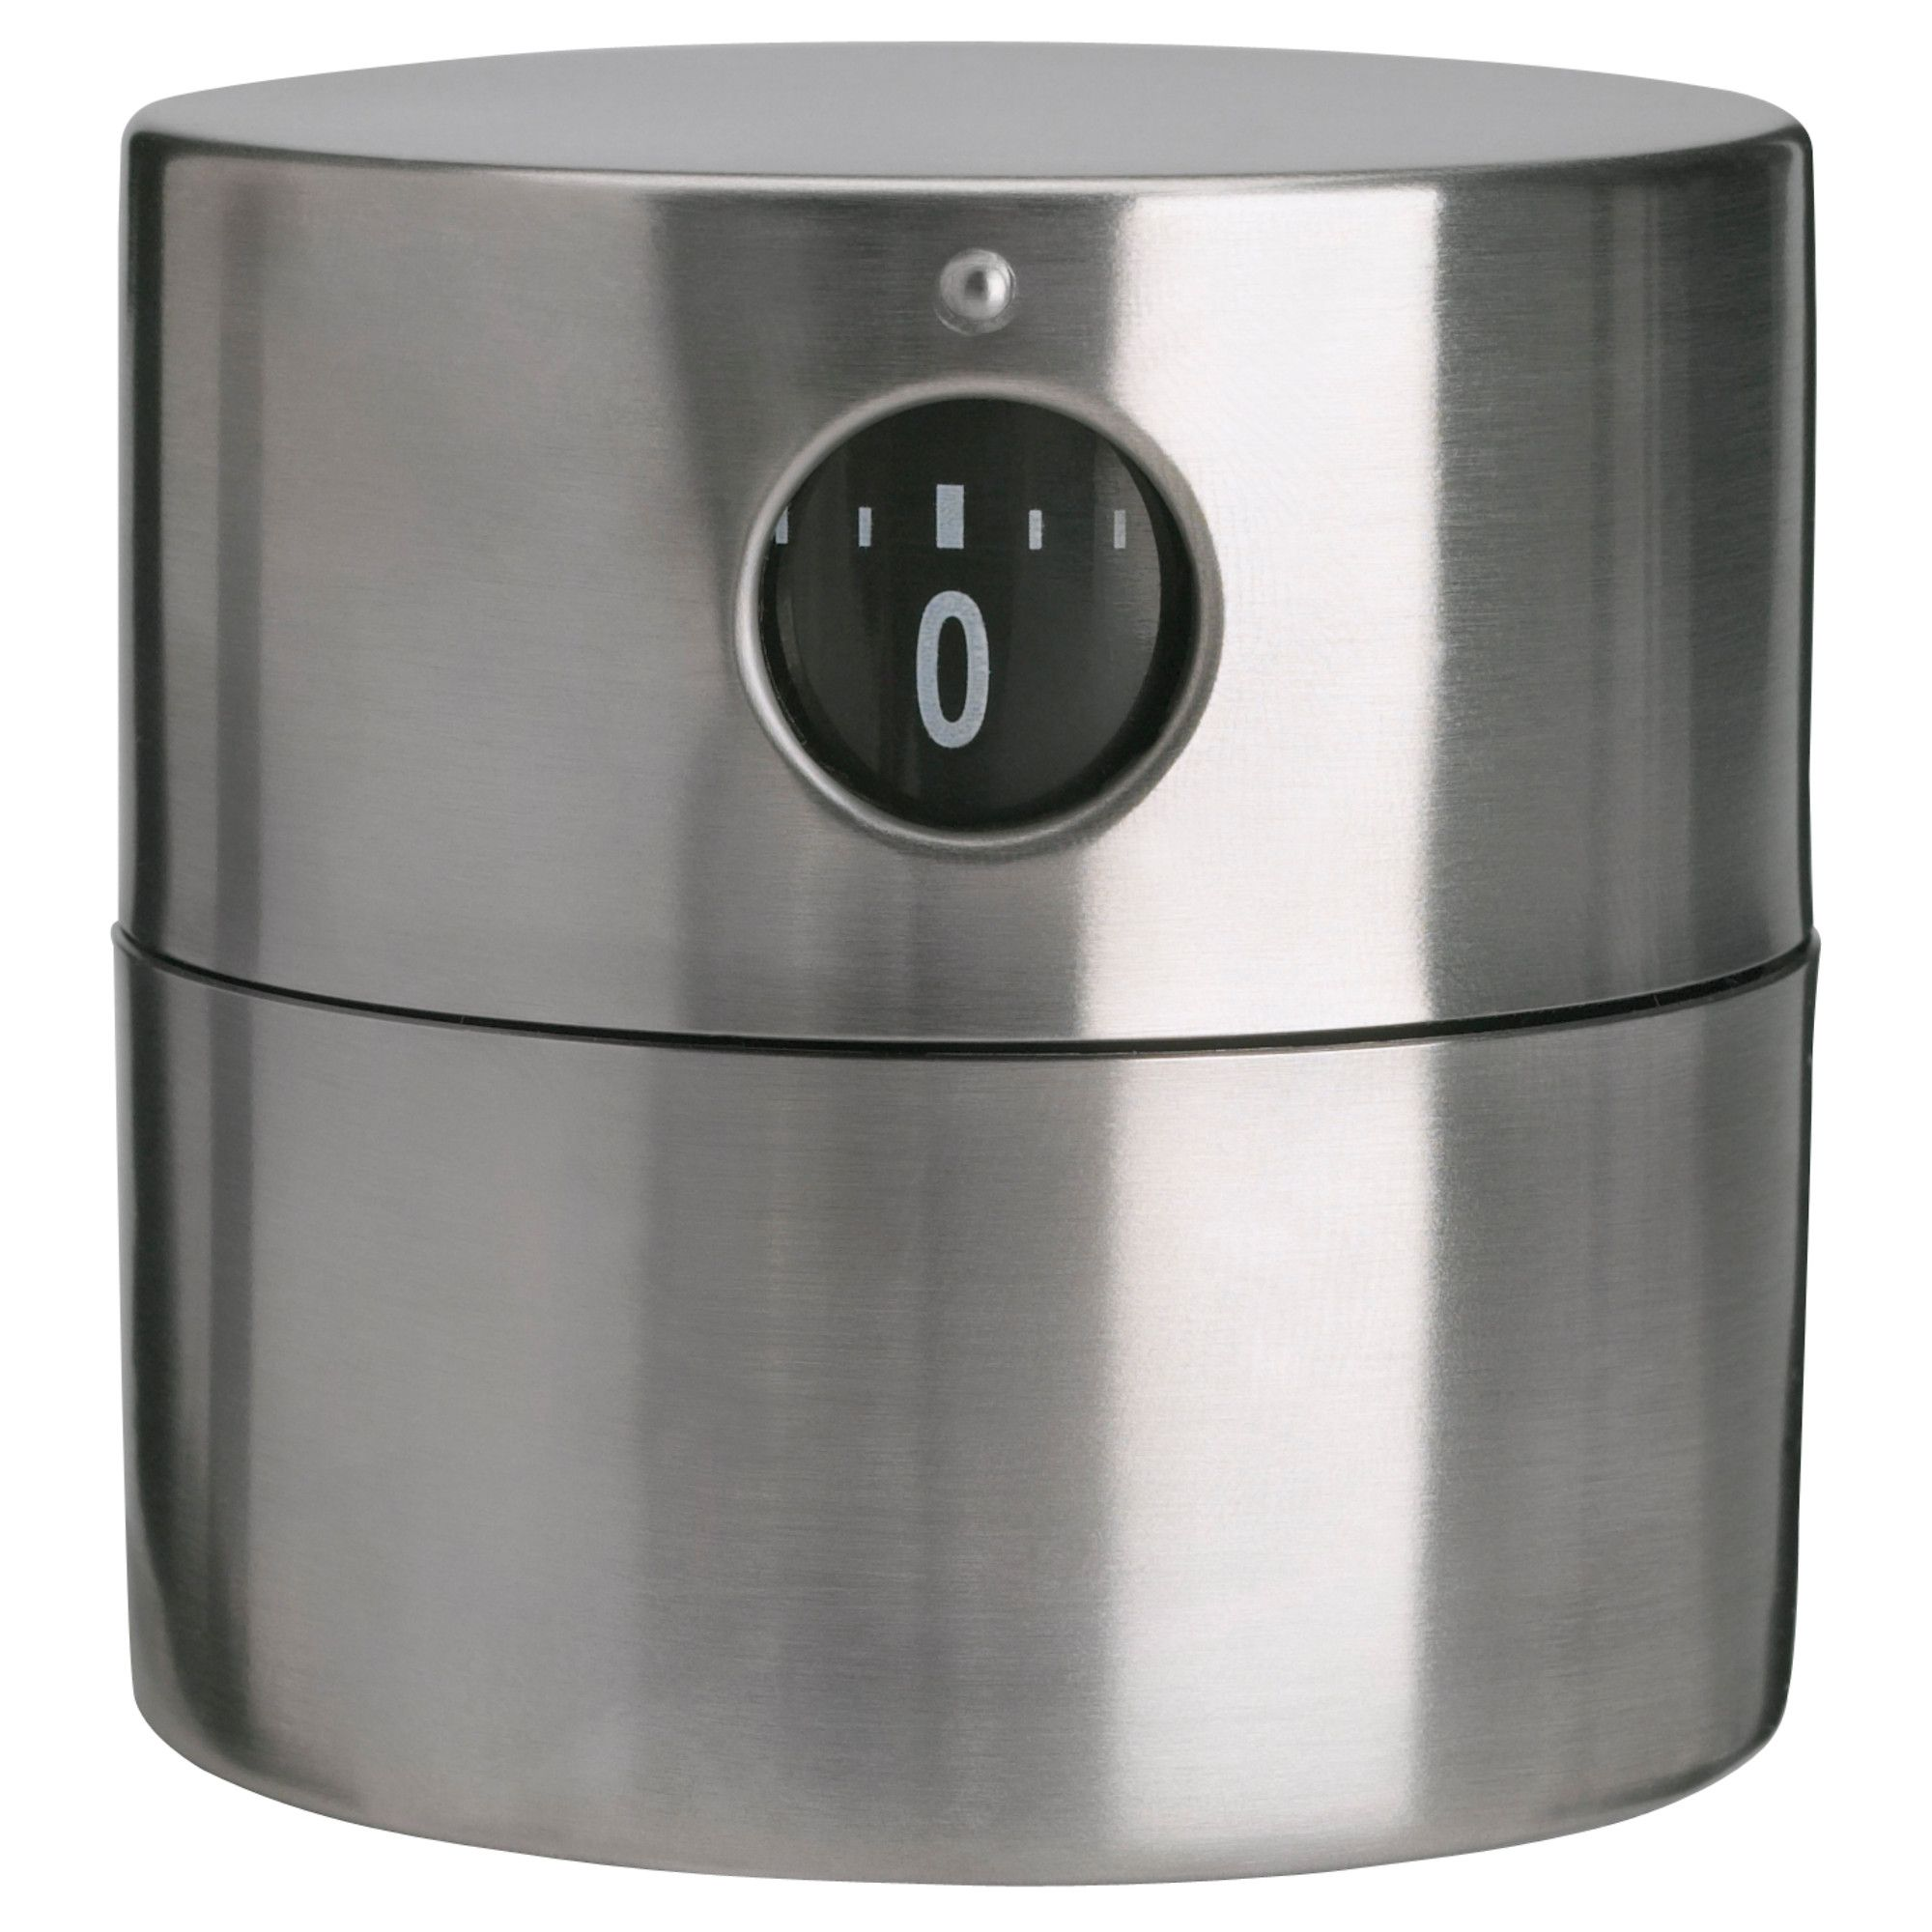 Ikea Kitchen Timer: ORDNING Timer, Stainless Steel